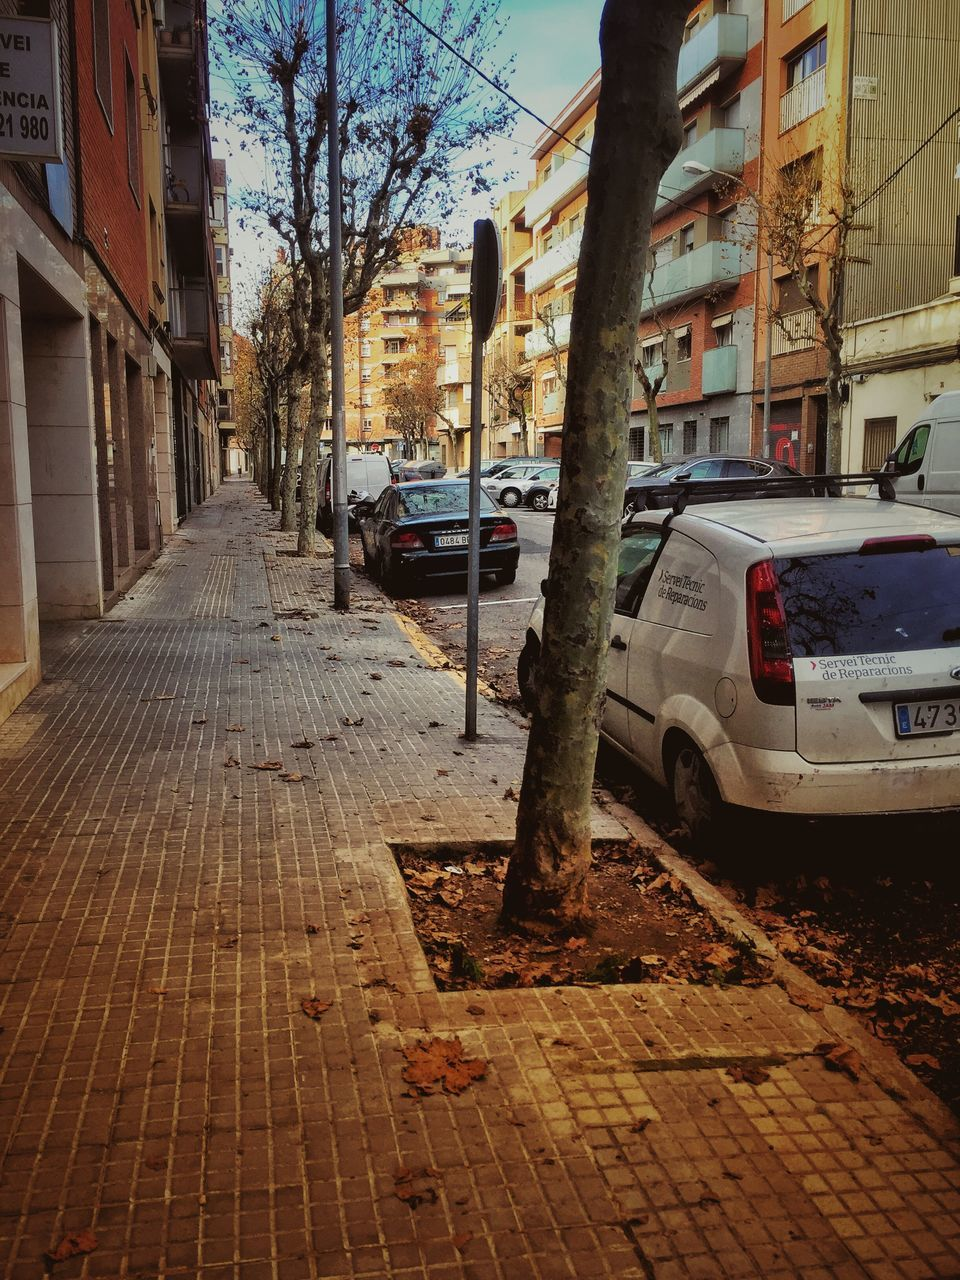 city, architecture, car, street, motor vehicle, mode of transportation, building exterior, built structure, transportation, building, land vehicle, footpath, tree, sidewalk, direction, residential district, no people, outdoors, day, nature, place, neighborhood, paving stone, location, alley